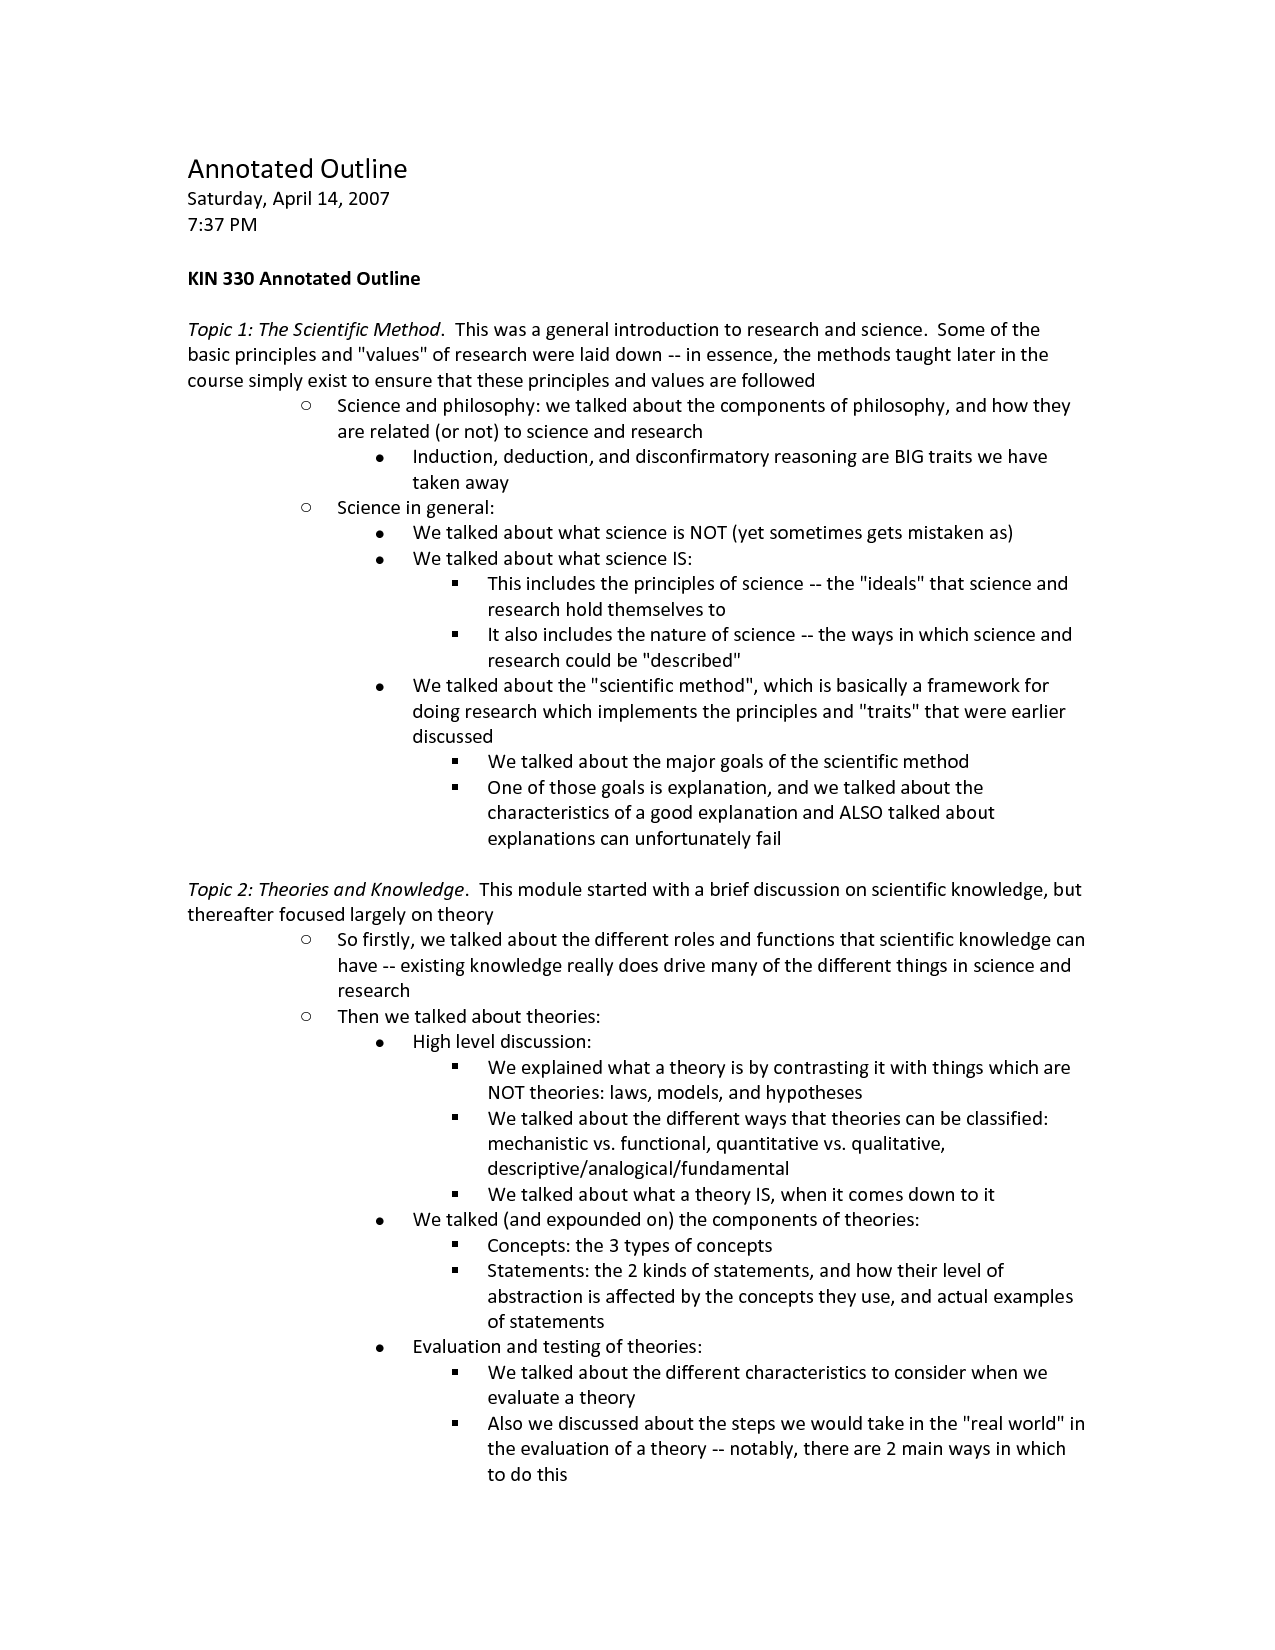 003 Apannotated Outline For Research Paper 308696 How To Write Wonderful A Apa Style Full